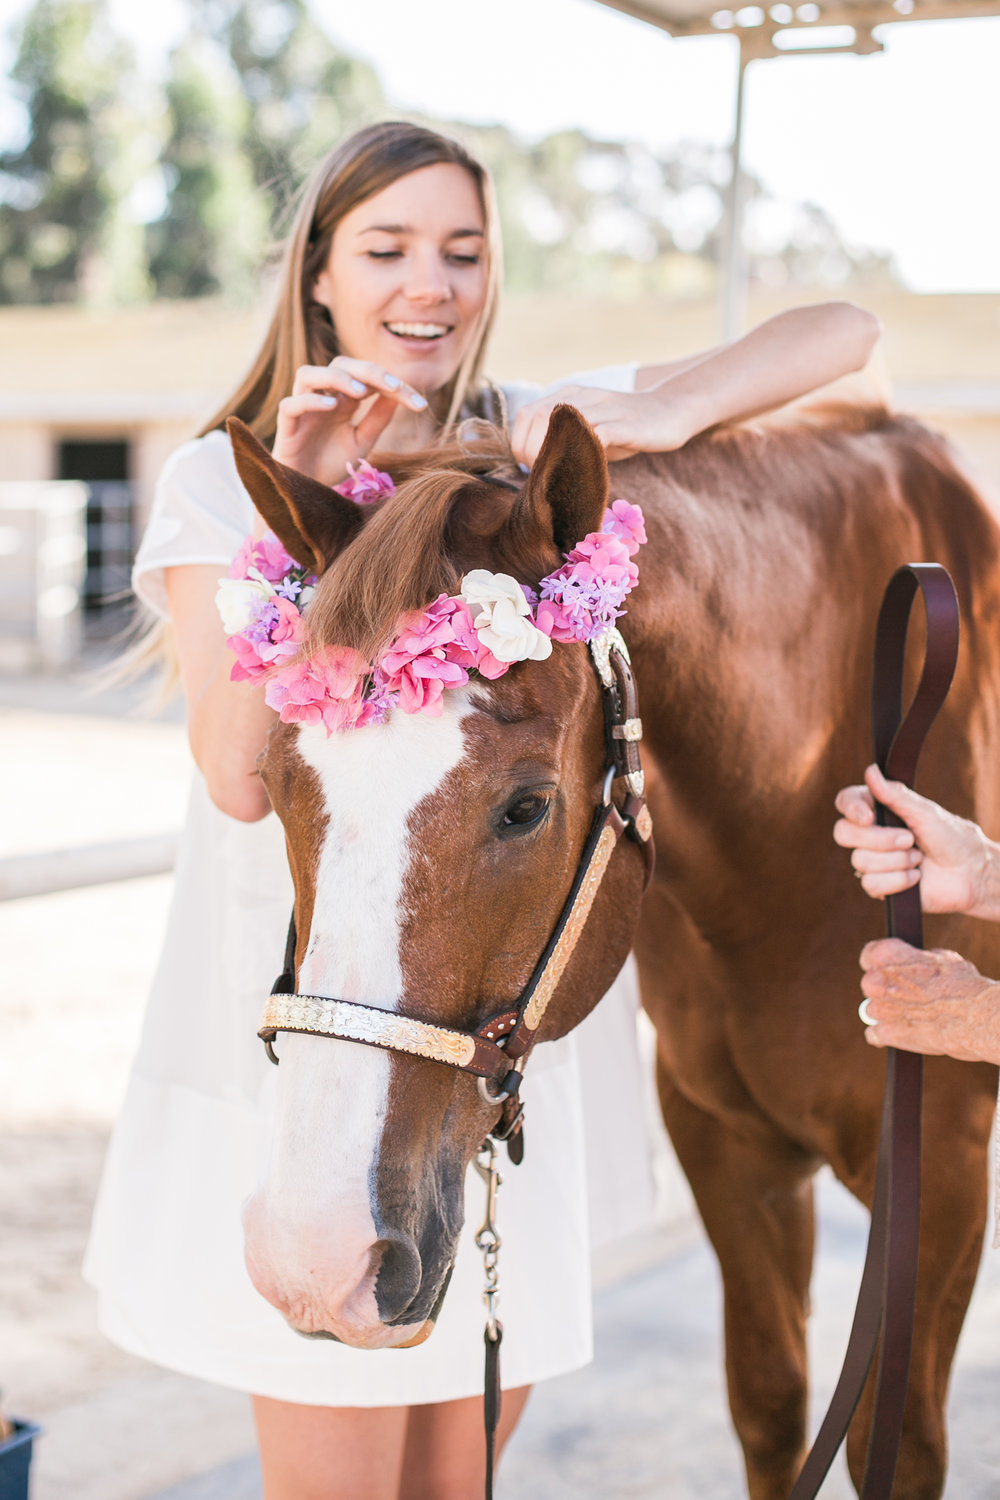 Mendola_Family _Session_Del_Mar_Equestrian_Ranch_2017-3.jpg